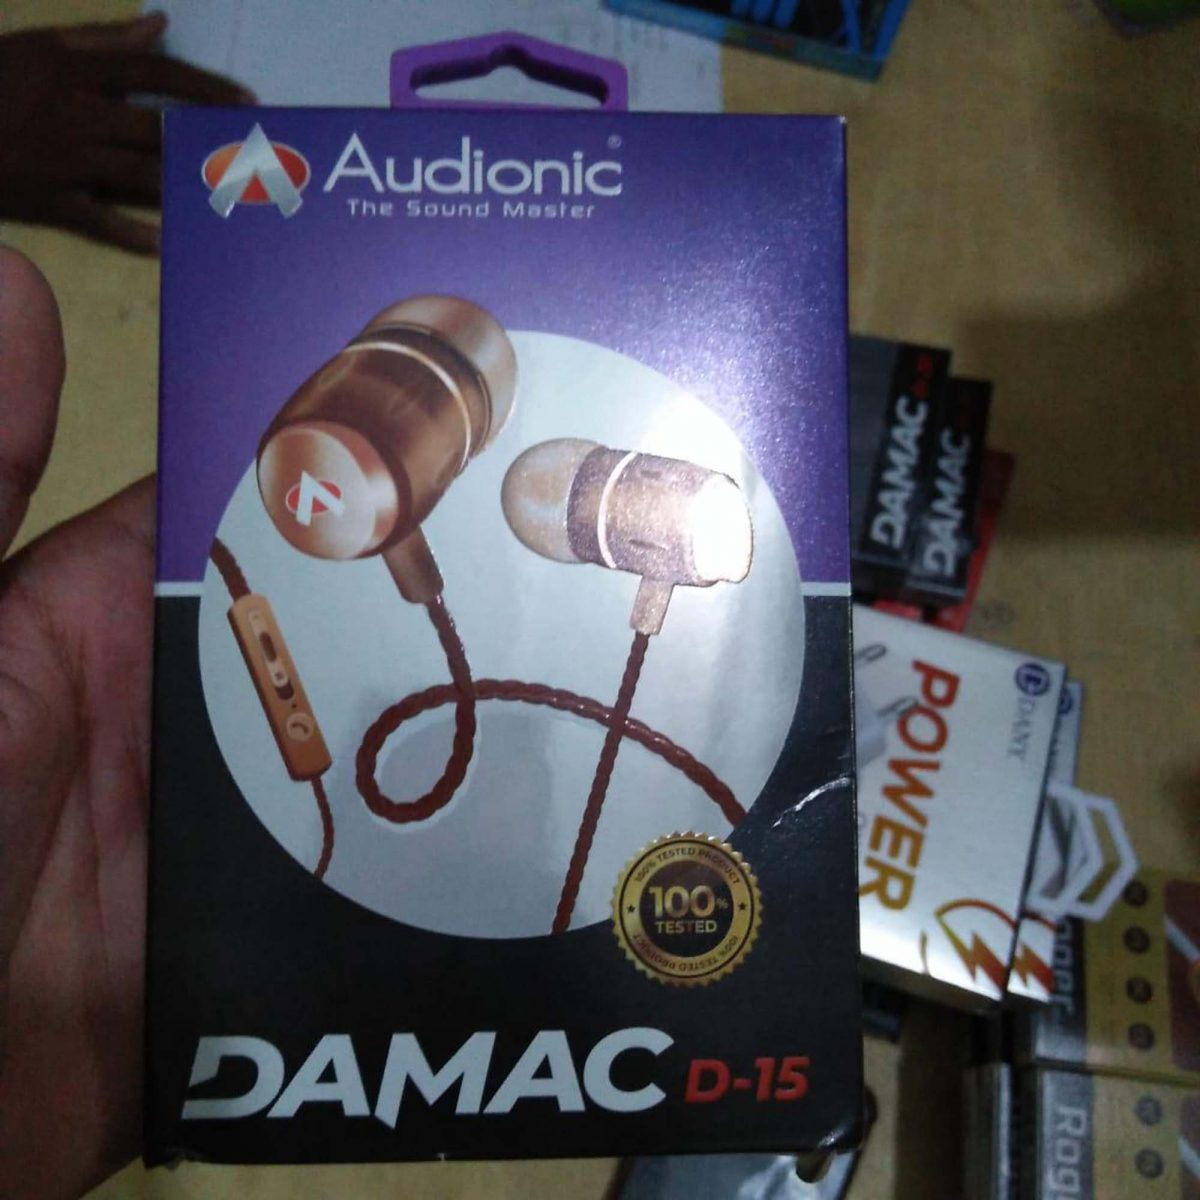 Audionic Brown Universal Earphone With Extra Bass - D-15